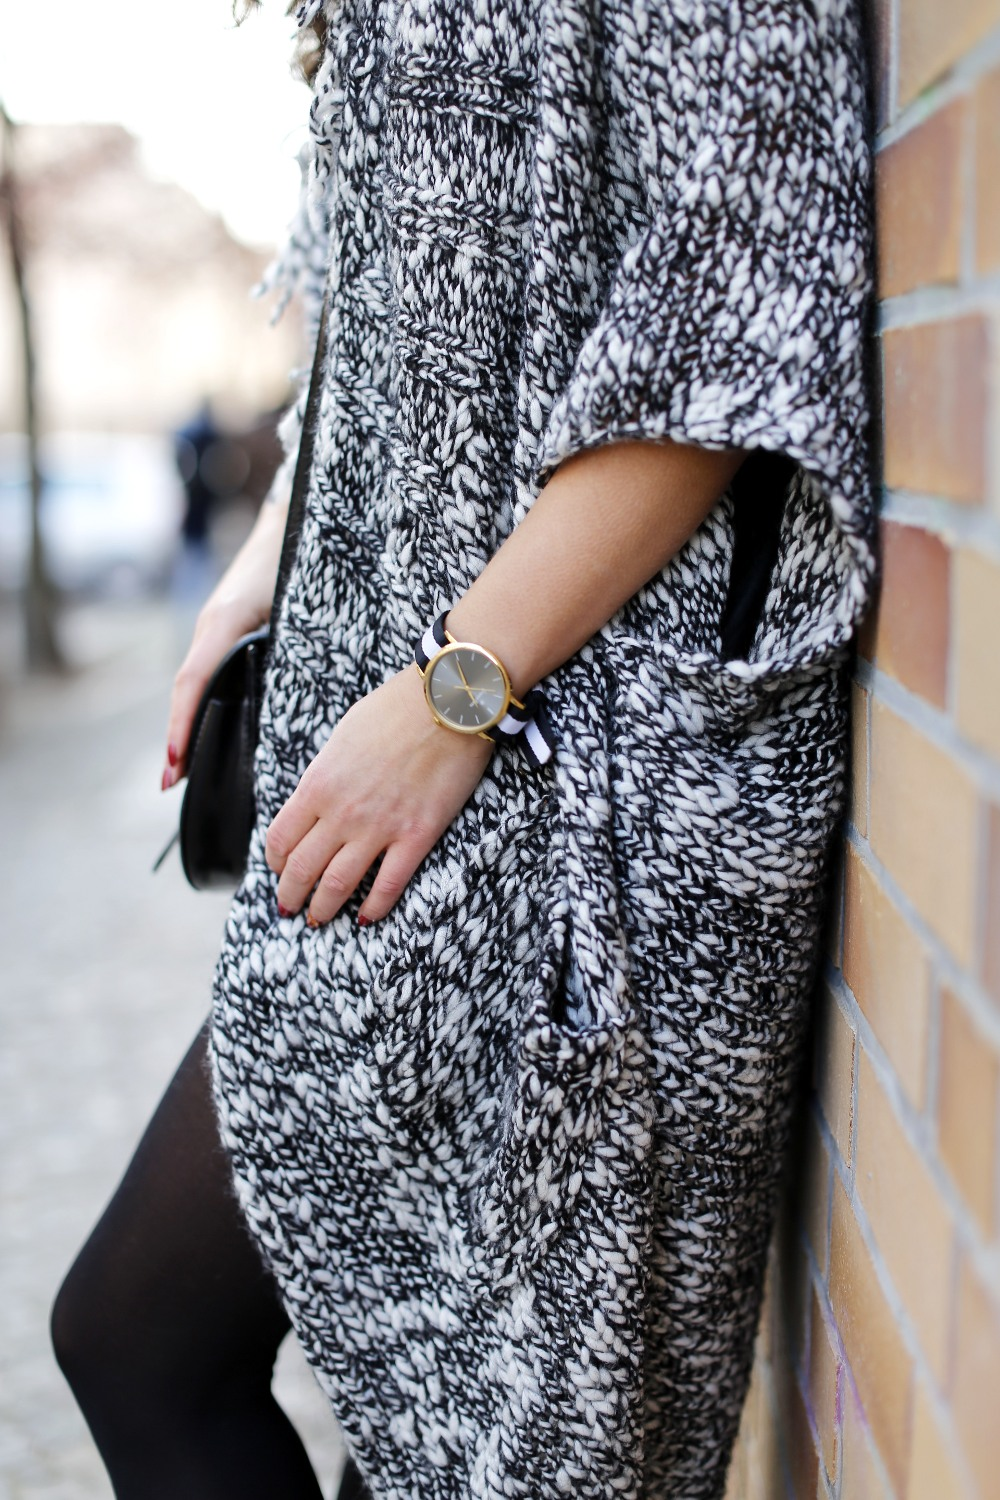 esprit long cardigan outfit black and white look black leather skirt streetstyle berlin look motto shirt hoch details